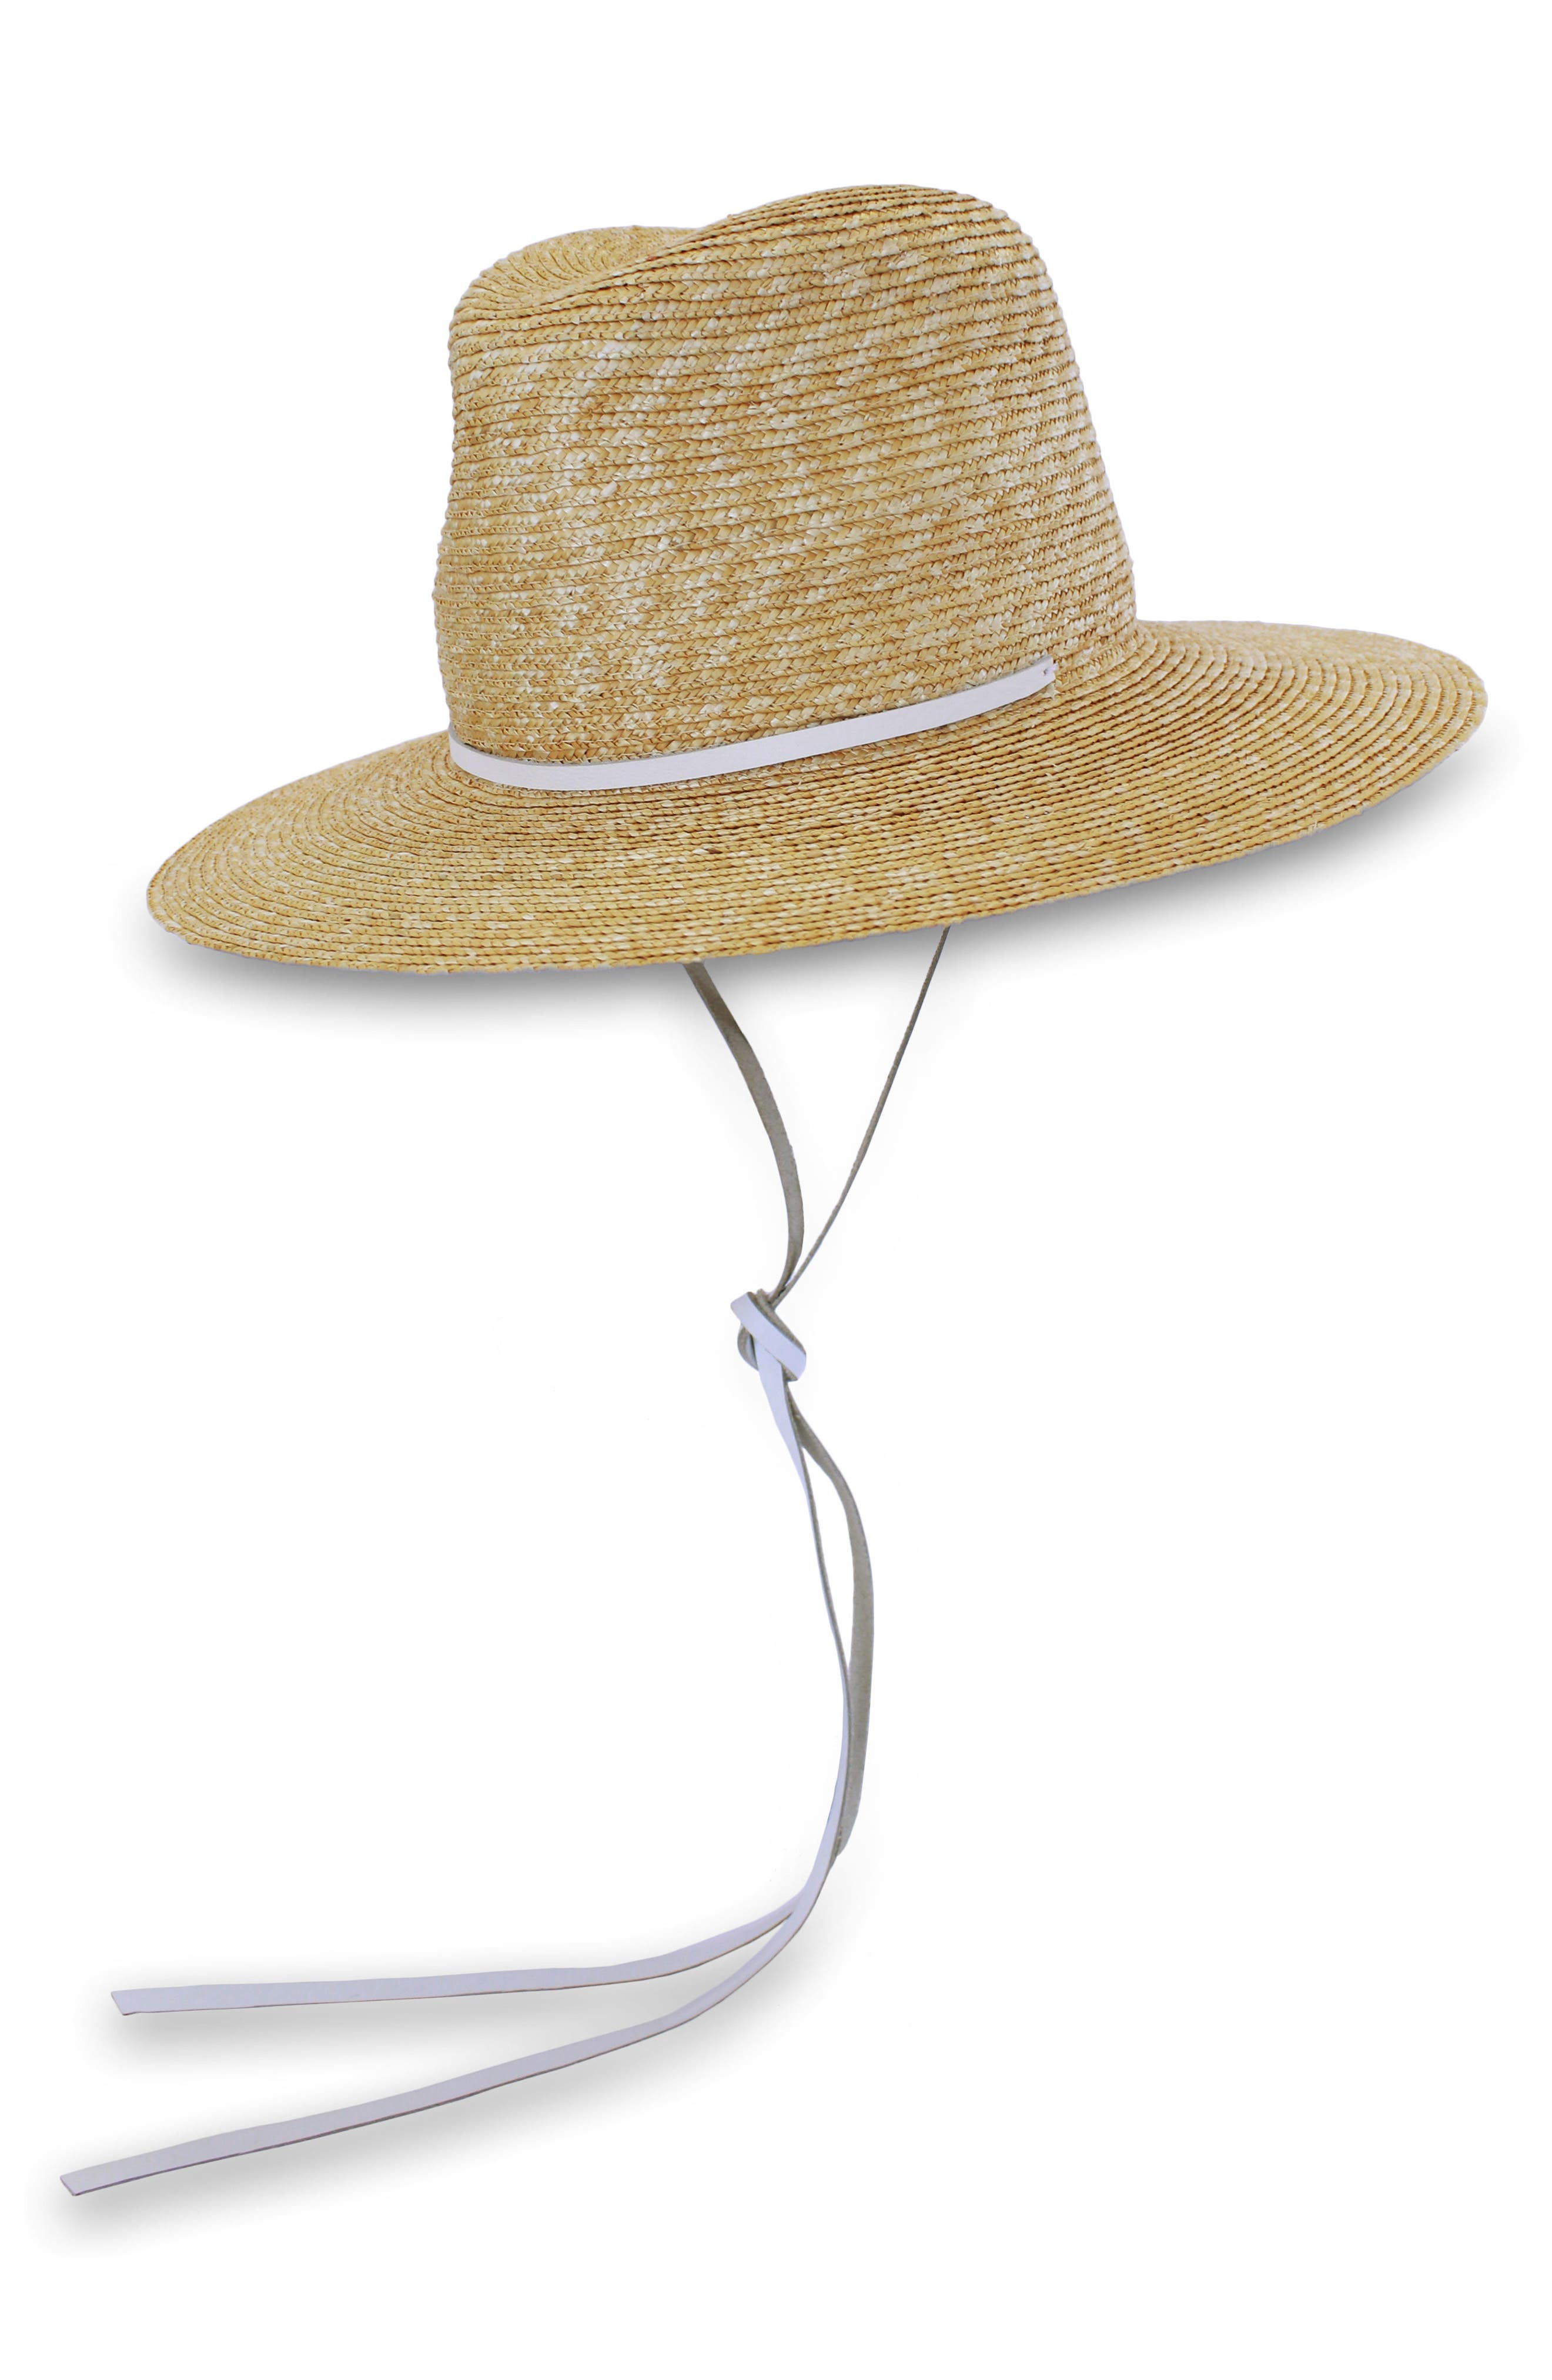 Marseille Straw Hat,                             Main thumbnail 1, color,                             NATURAL/ WHITE